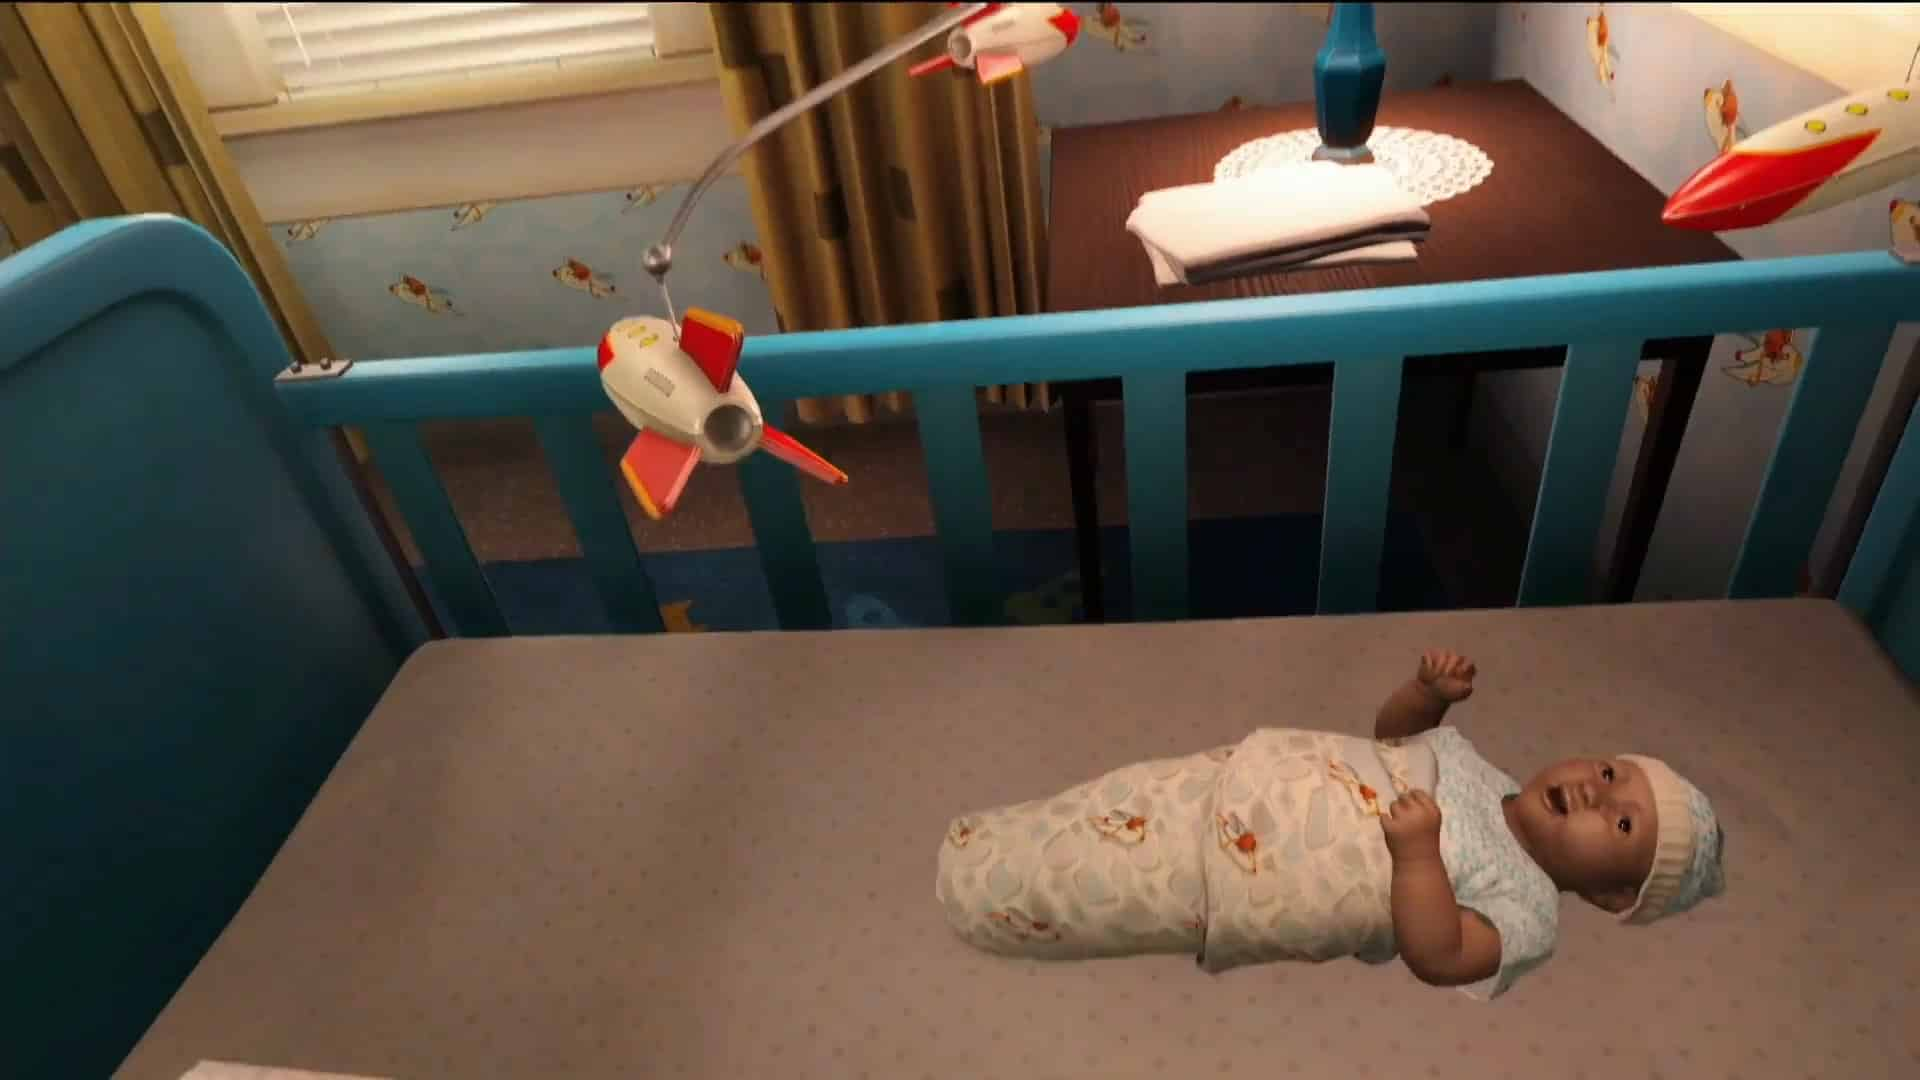 Fallout 4 baby Shaun rescue ruins the story by trying to make you care, no thanks, Bethesda